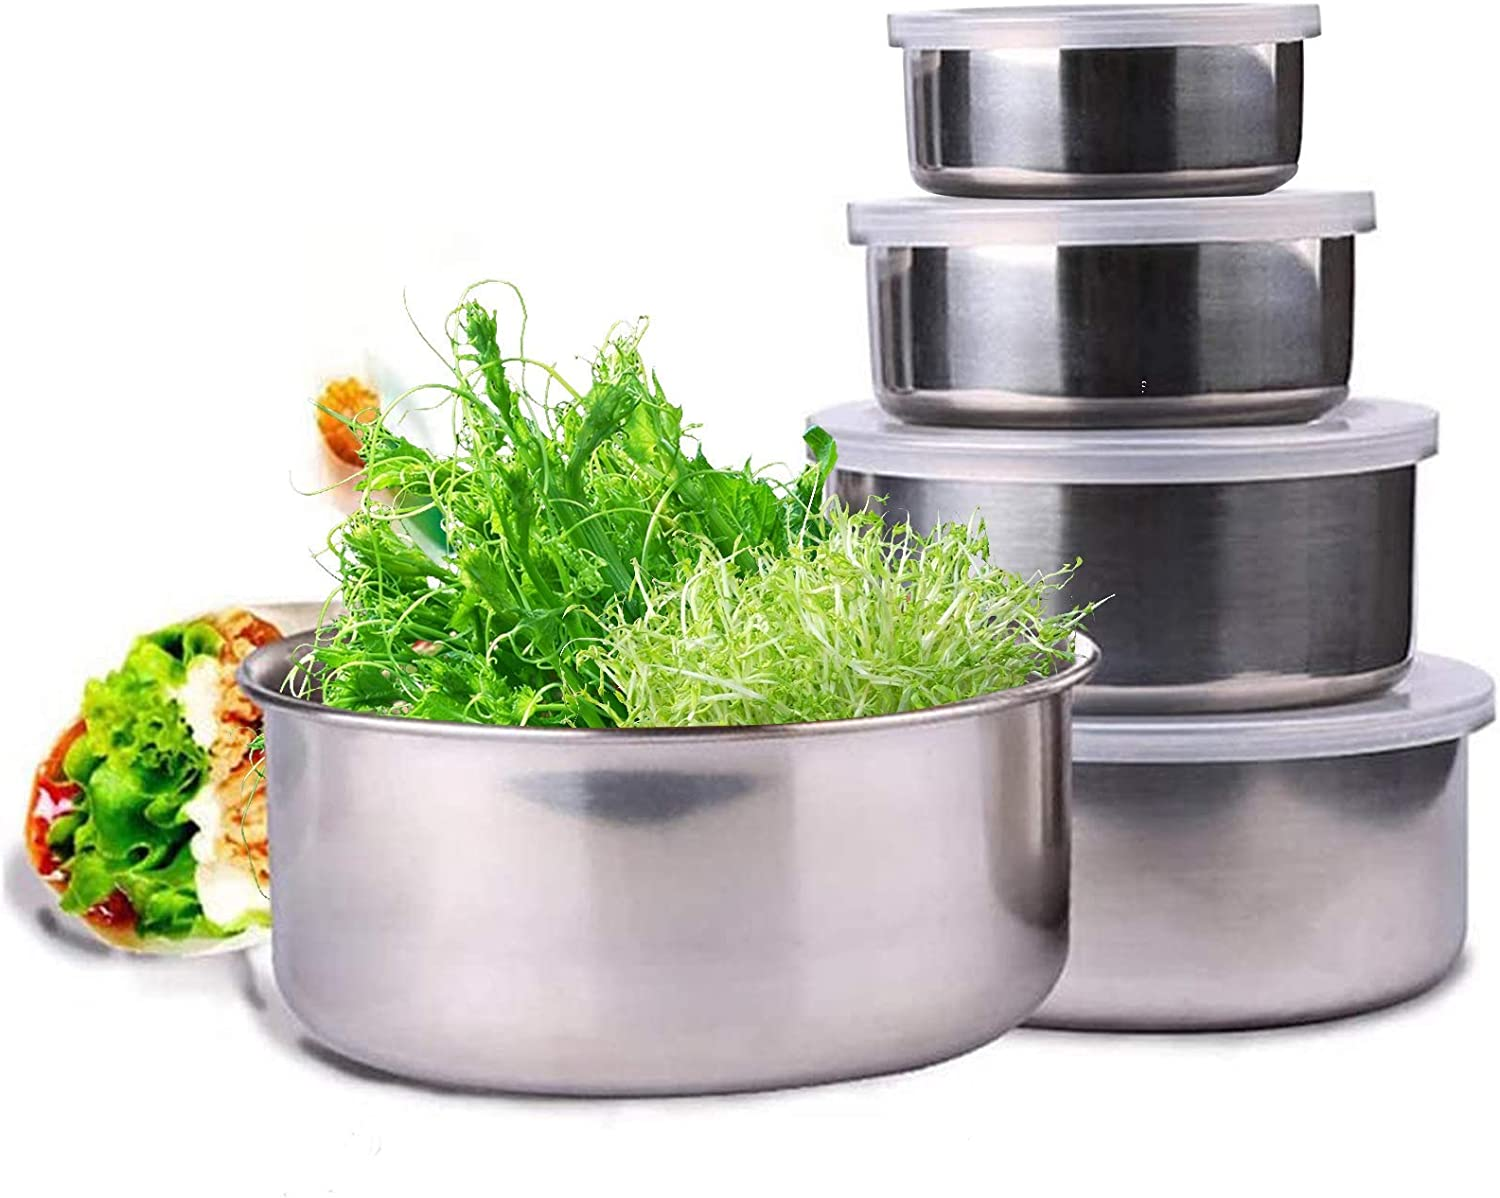 Stainless Steel Containers Bowls (Set of 5), Easy To Clean, Nesting Bowls for Space Saving Storage, Great for Cooking, MIxing,Prepping